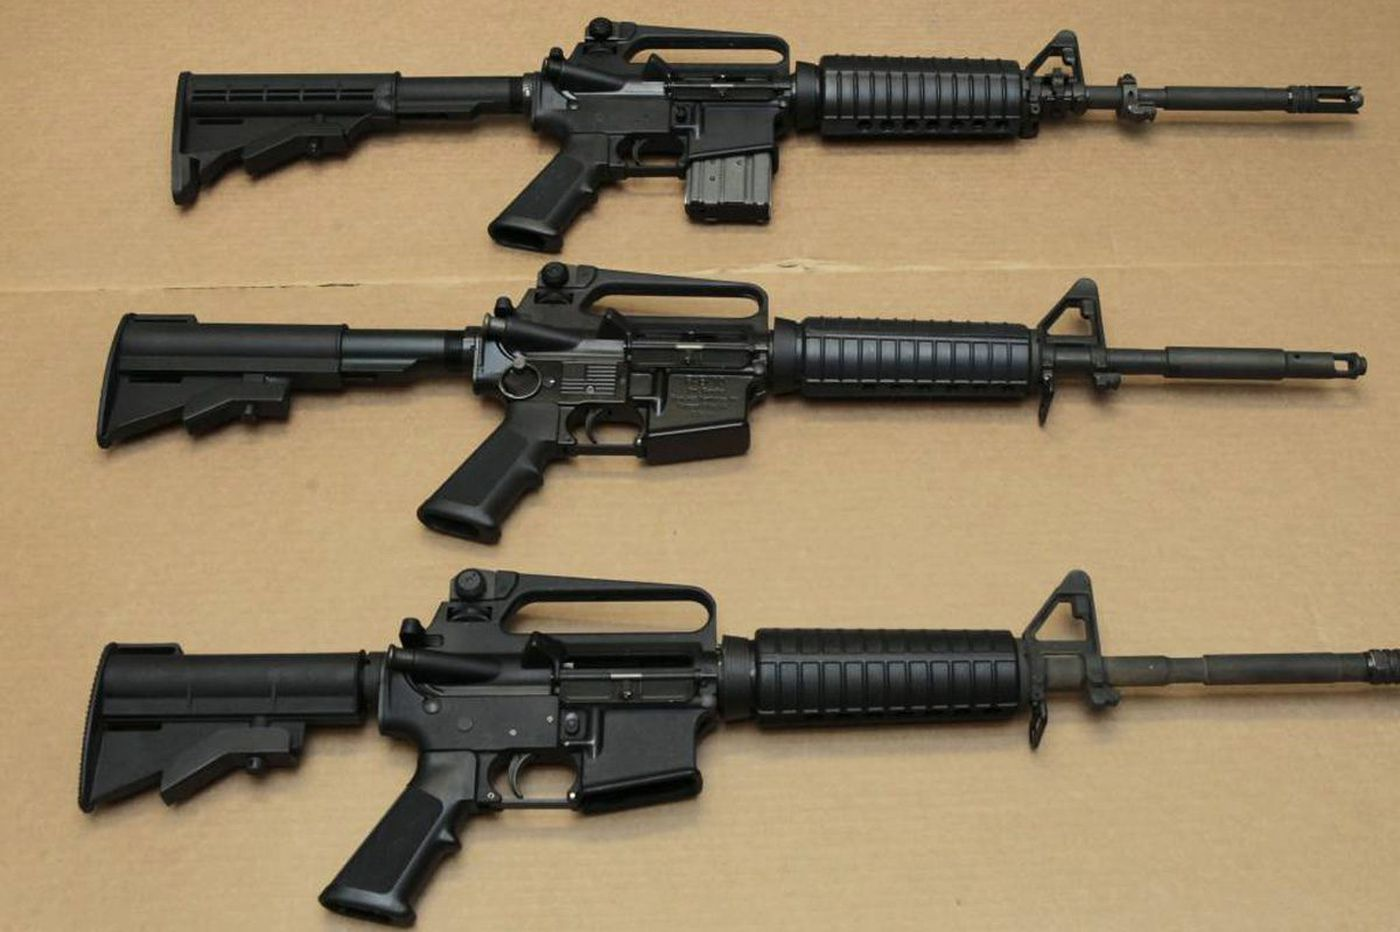 Pa. school district to move kids due to church honoring AR-15 rifles